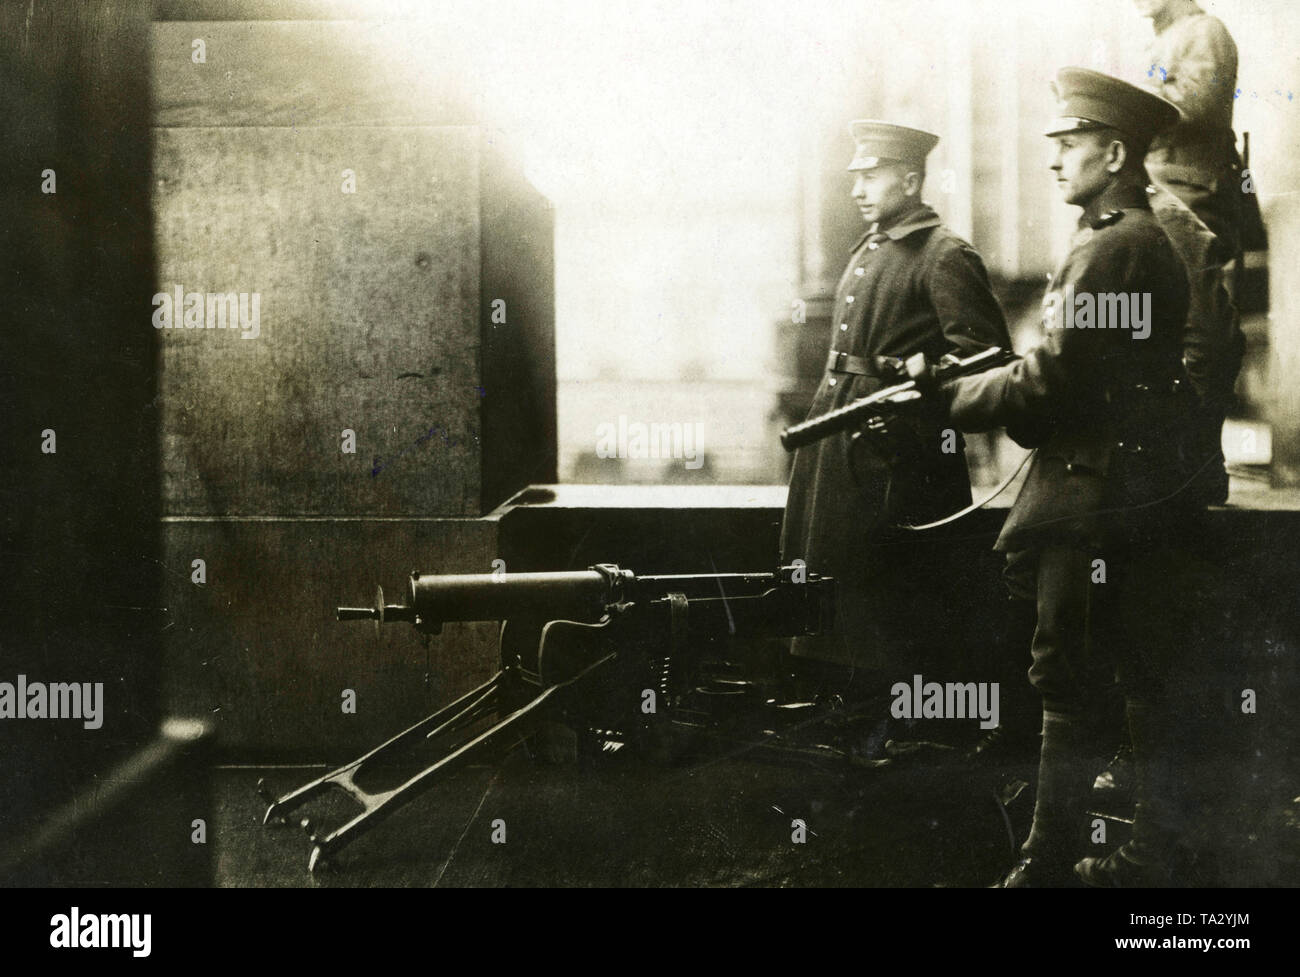 Military securing the Reichstag grounds during deliberations on the Works Councils Act. - Stock Image